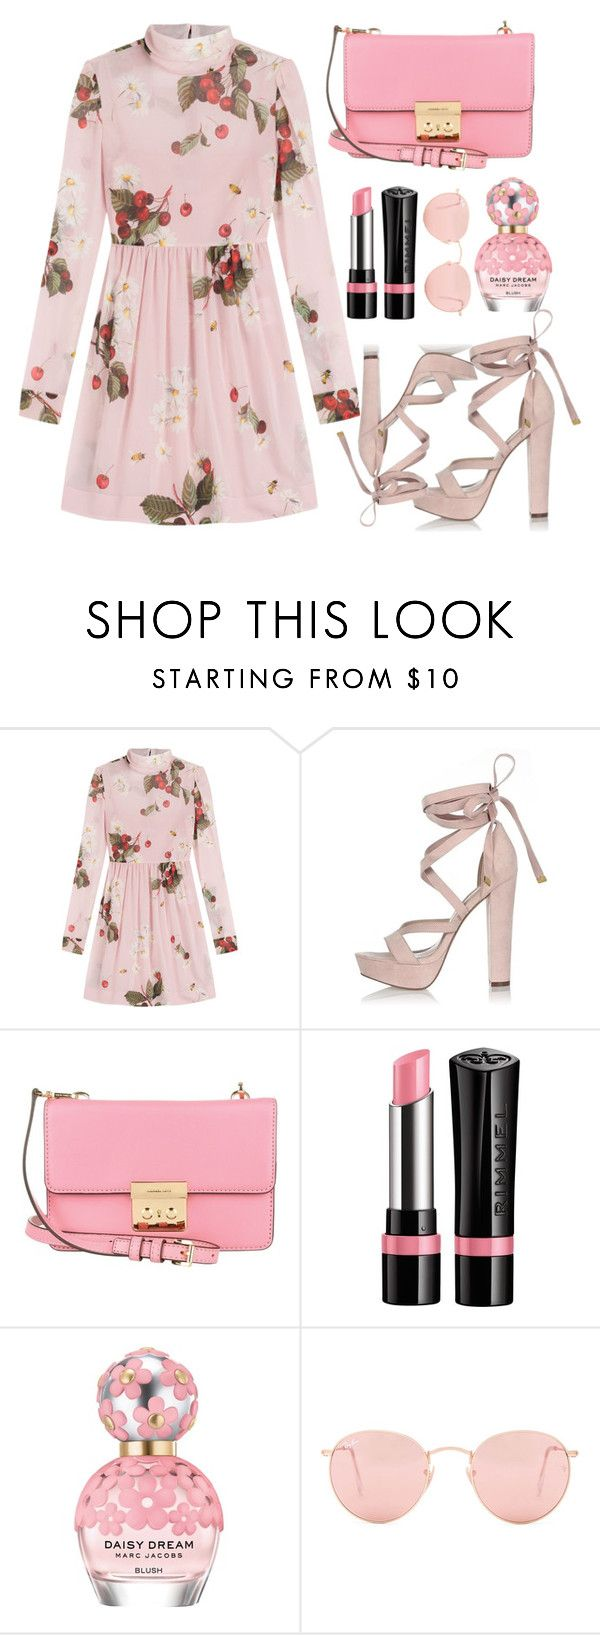 """""""Summer date"""" by nicolesynth ❤ liked on Polyvore featuring RED Valentino, River Island, Michael Kors, Rimmel, Marc Jacobs and Ray-Ban"""